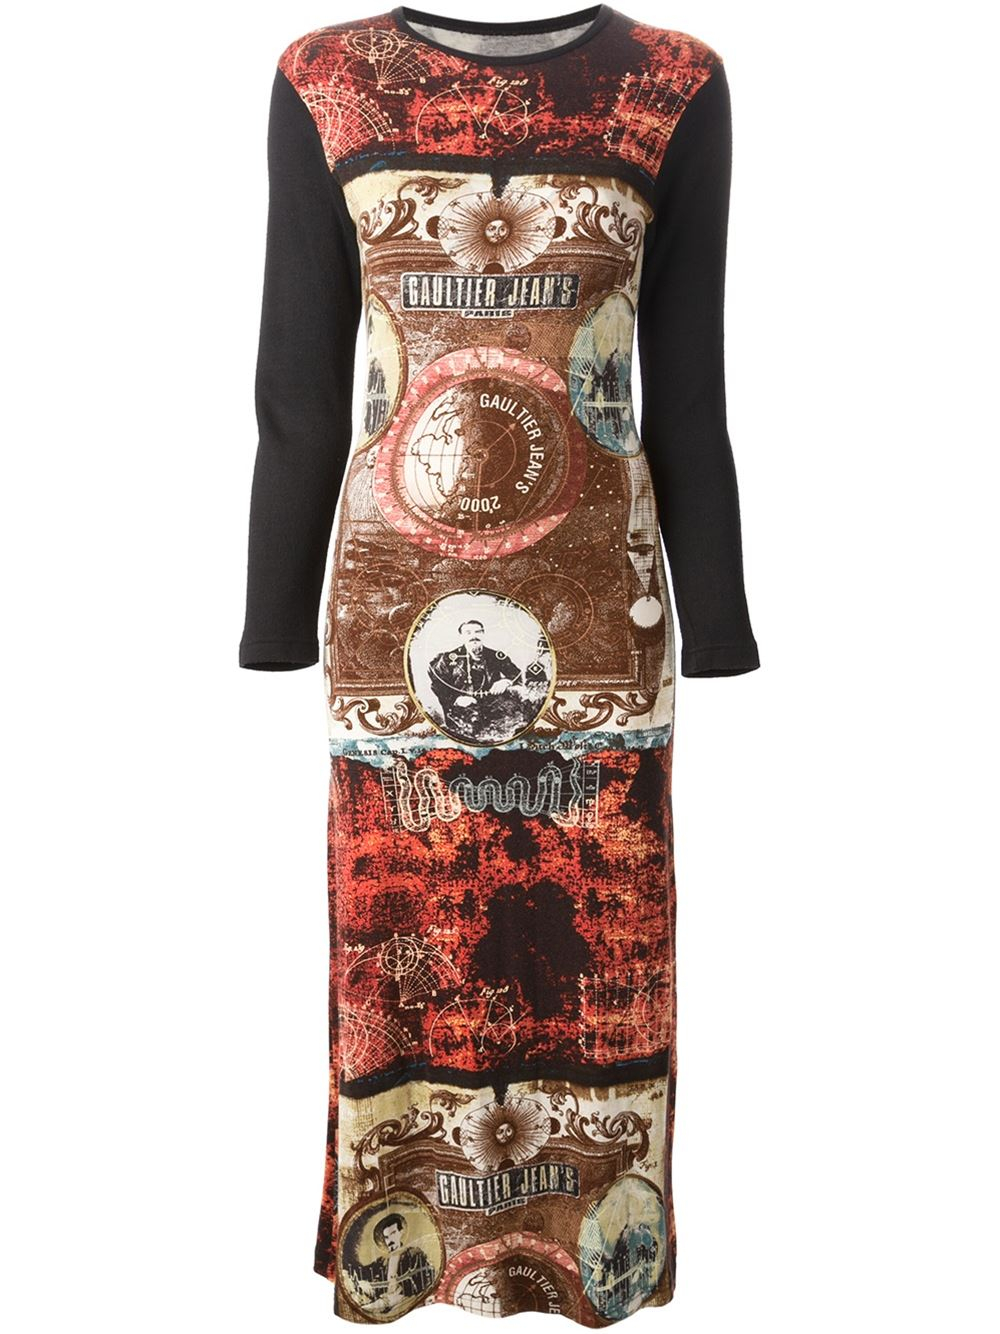 Jean paul gaultier printed t shirt dress in multicolor - Jean paul gaultier puissance 2 ...